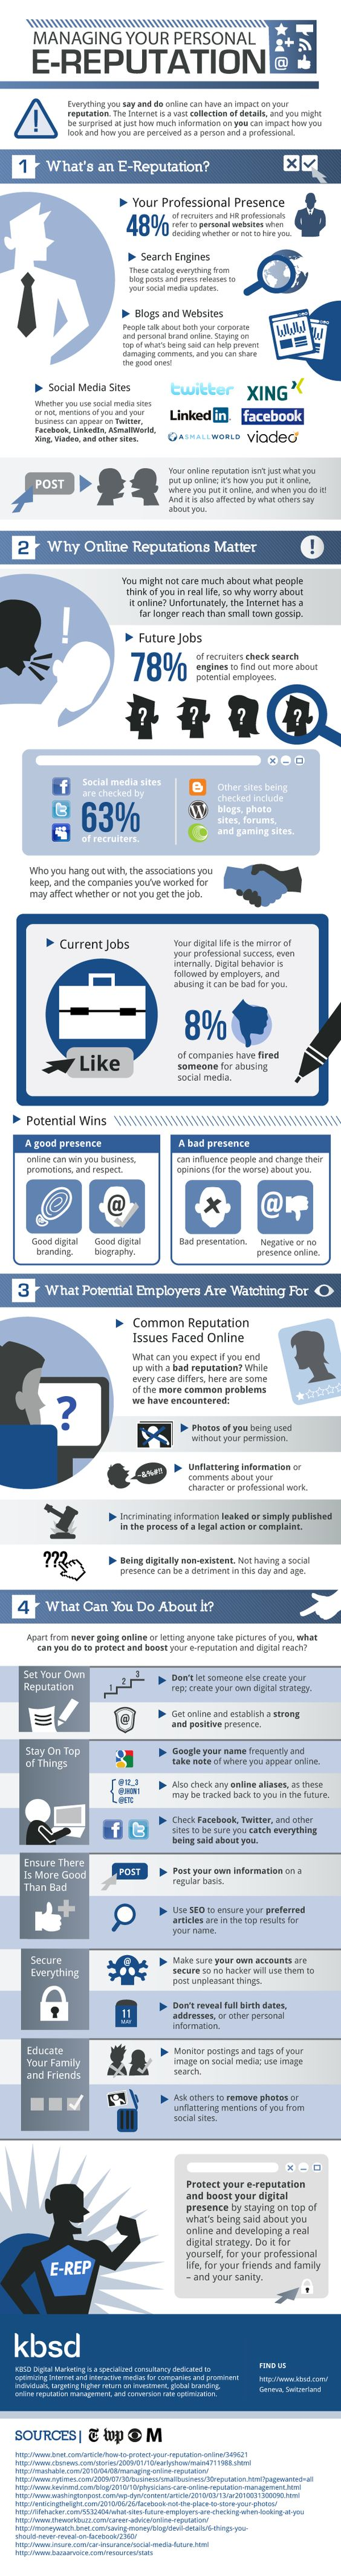 קרדיט: KBSD Digital Marketing